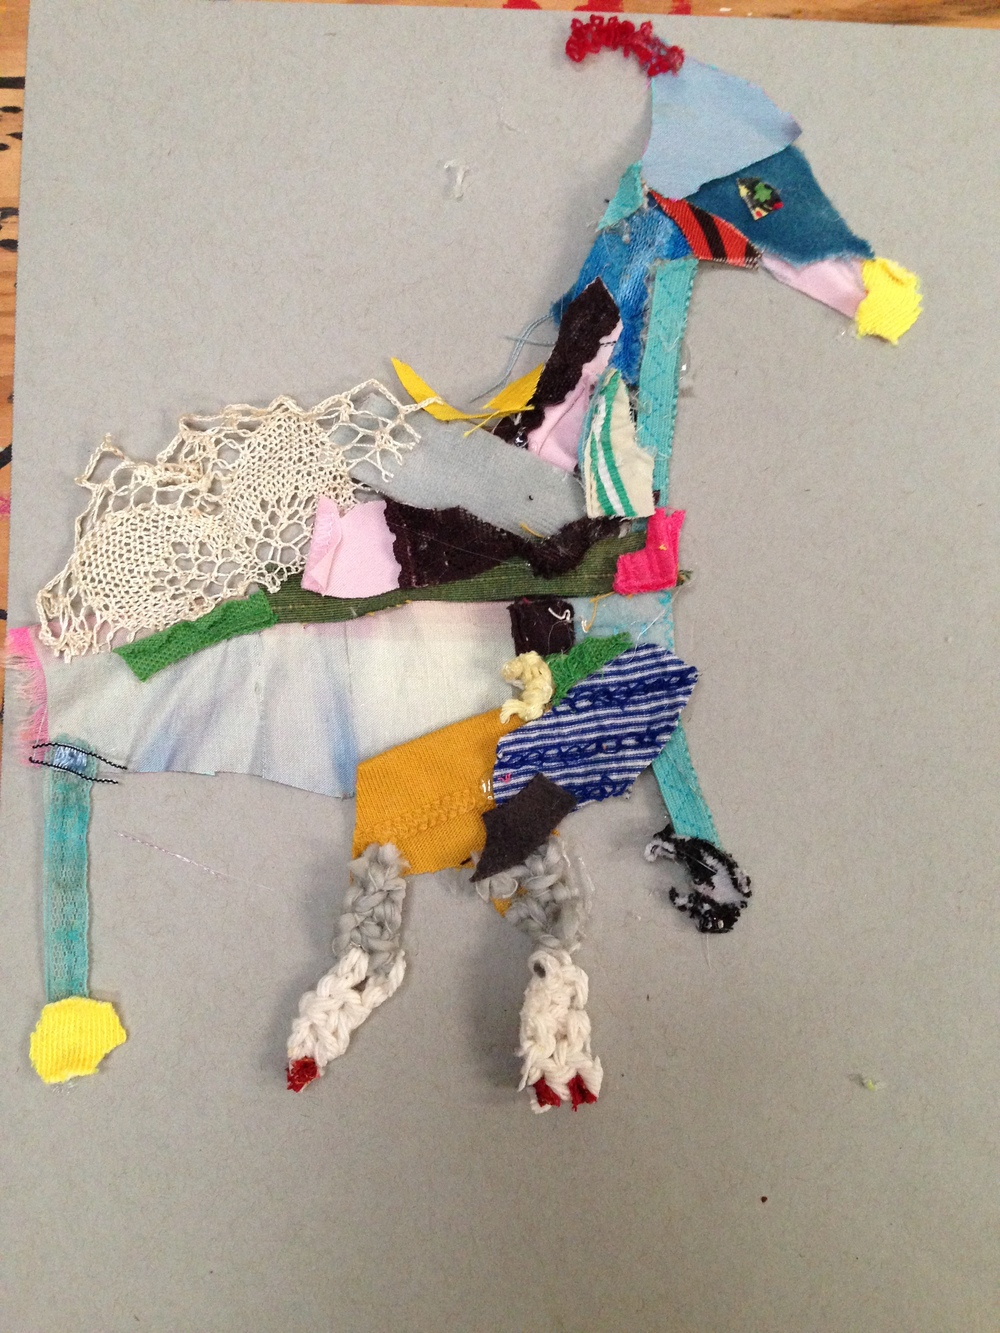 Velveteen humpbacked Reindeer  20.5 x 20.5 inches  Recycled fabric:  2015